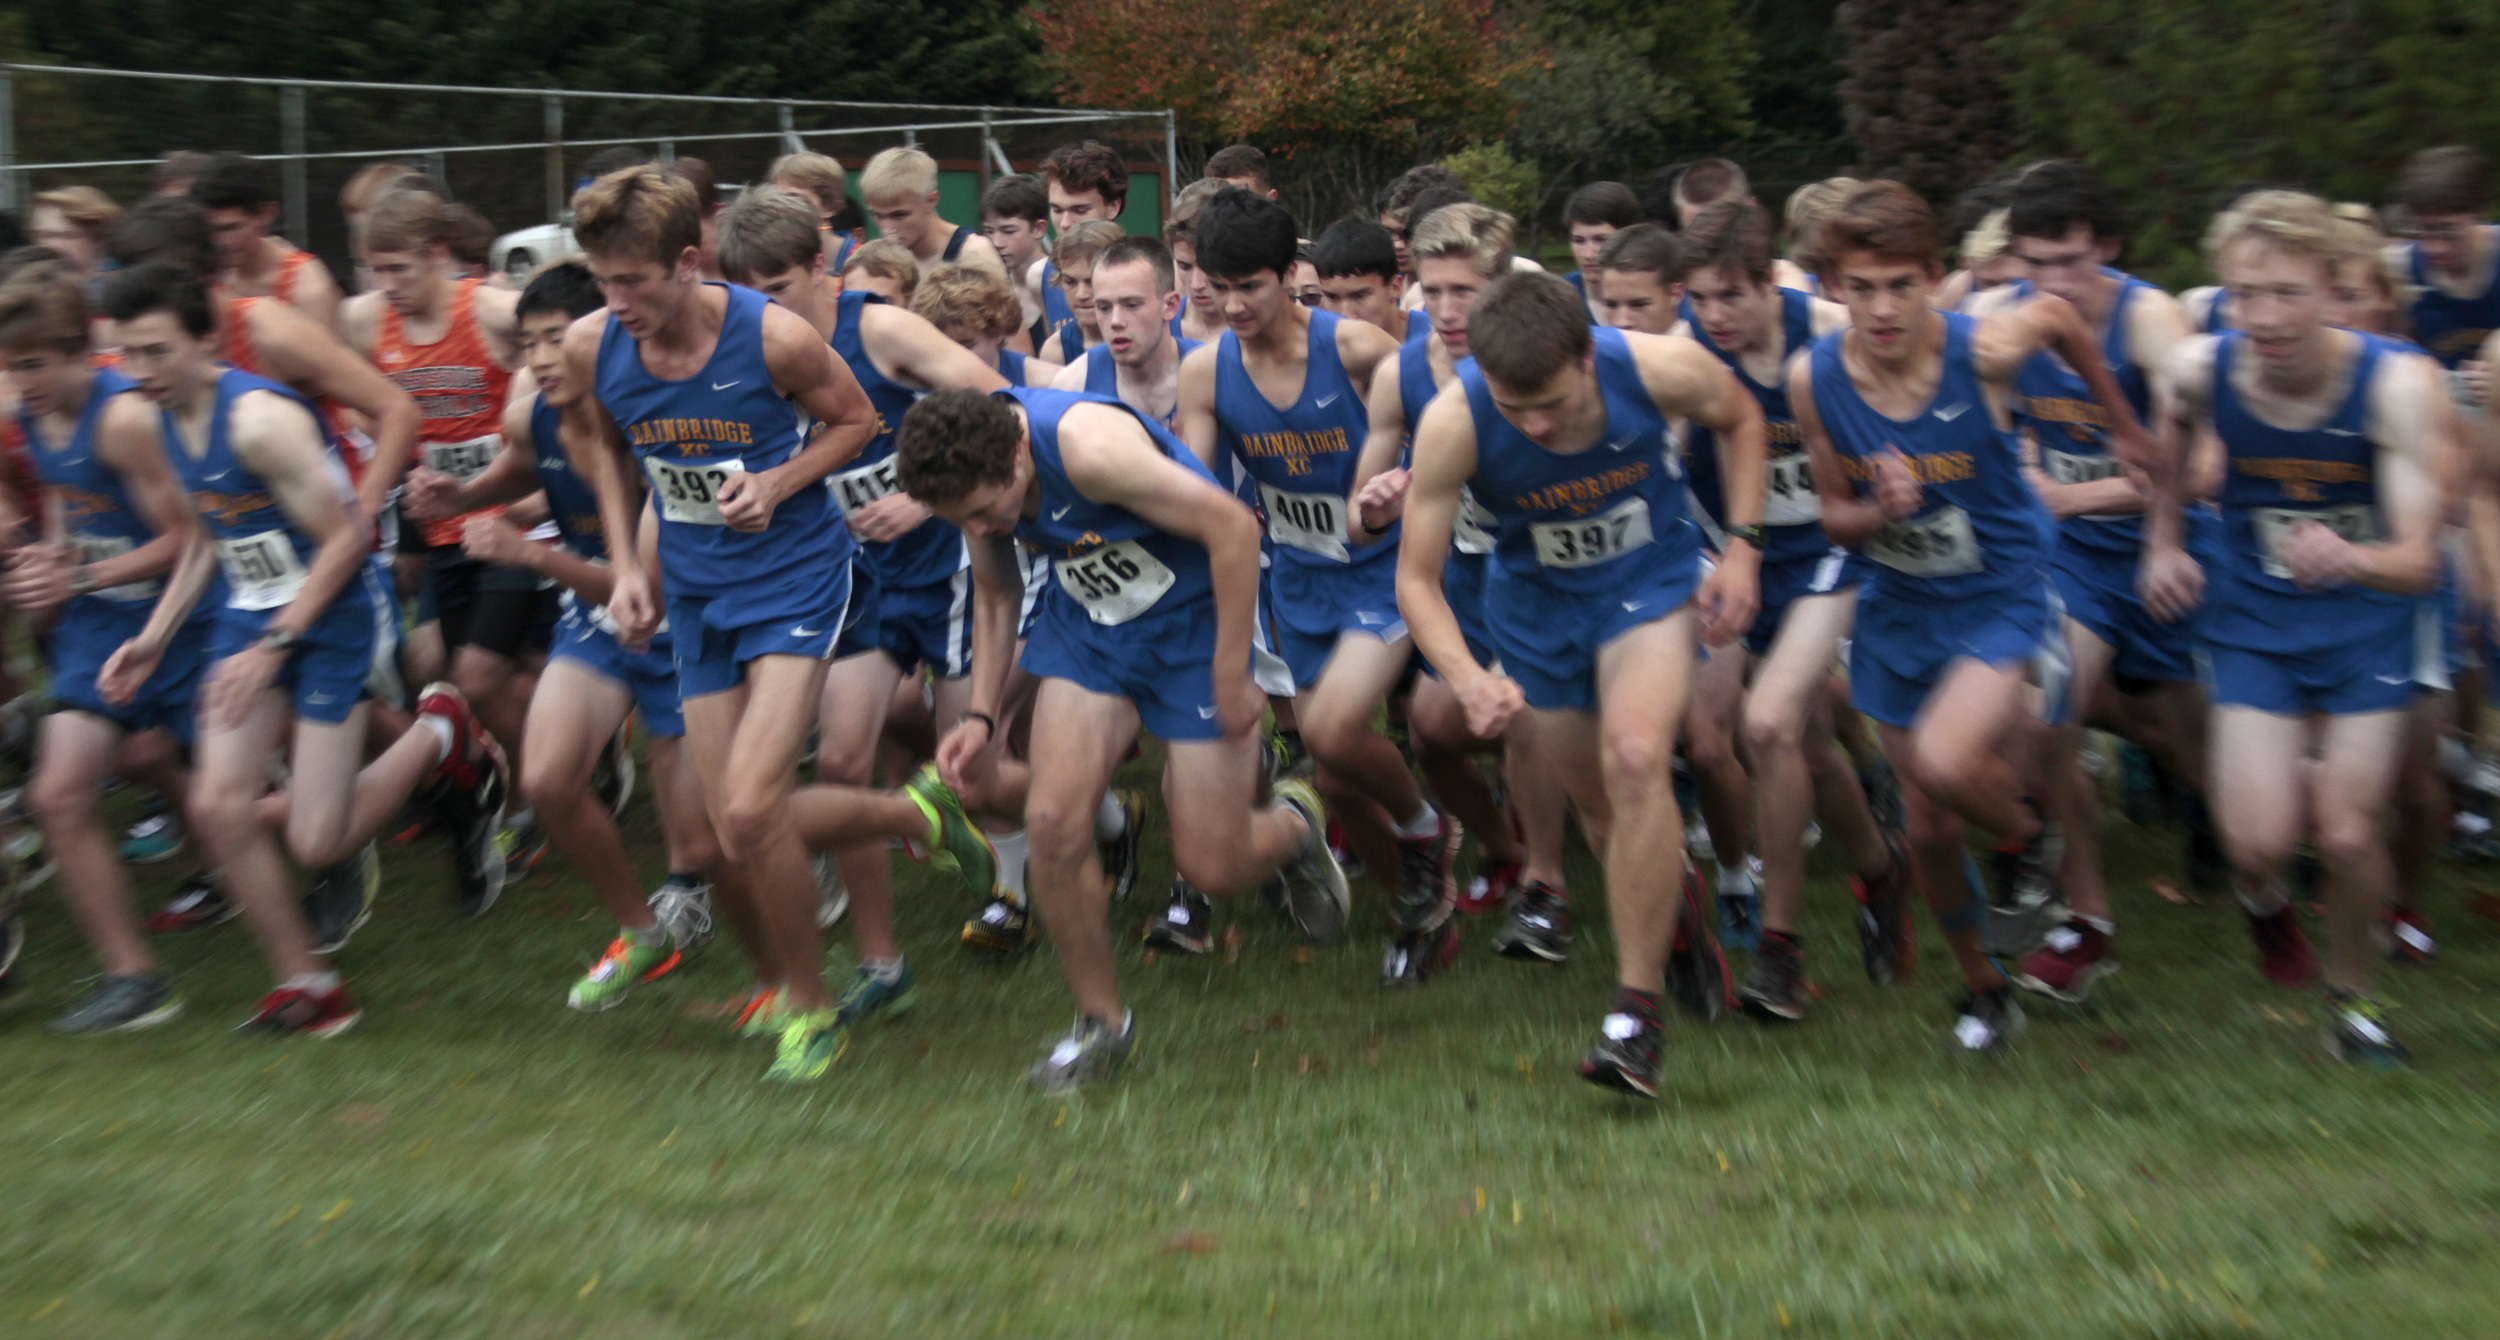 The start of the mens event at the sole home meet of the Bainbridge High cross country team's last season. BHS took first place in both the mens and womens divisions, beating out runners from Eastside Catholic, Franklin and Chief Sealth